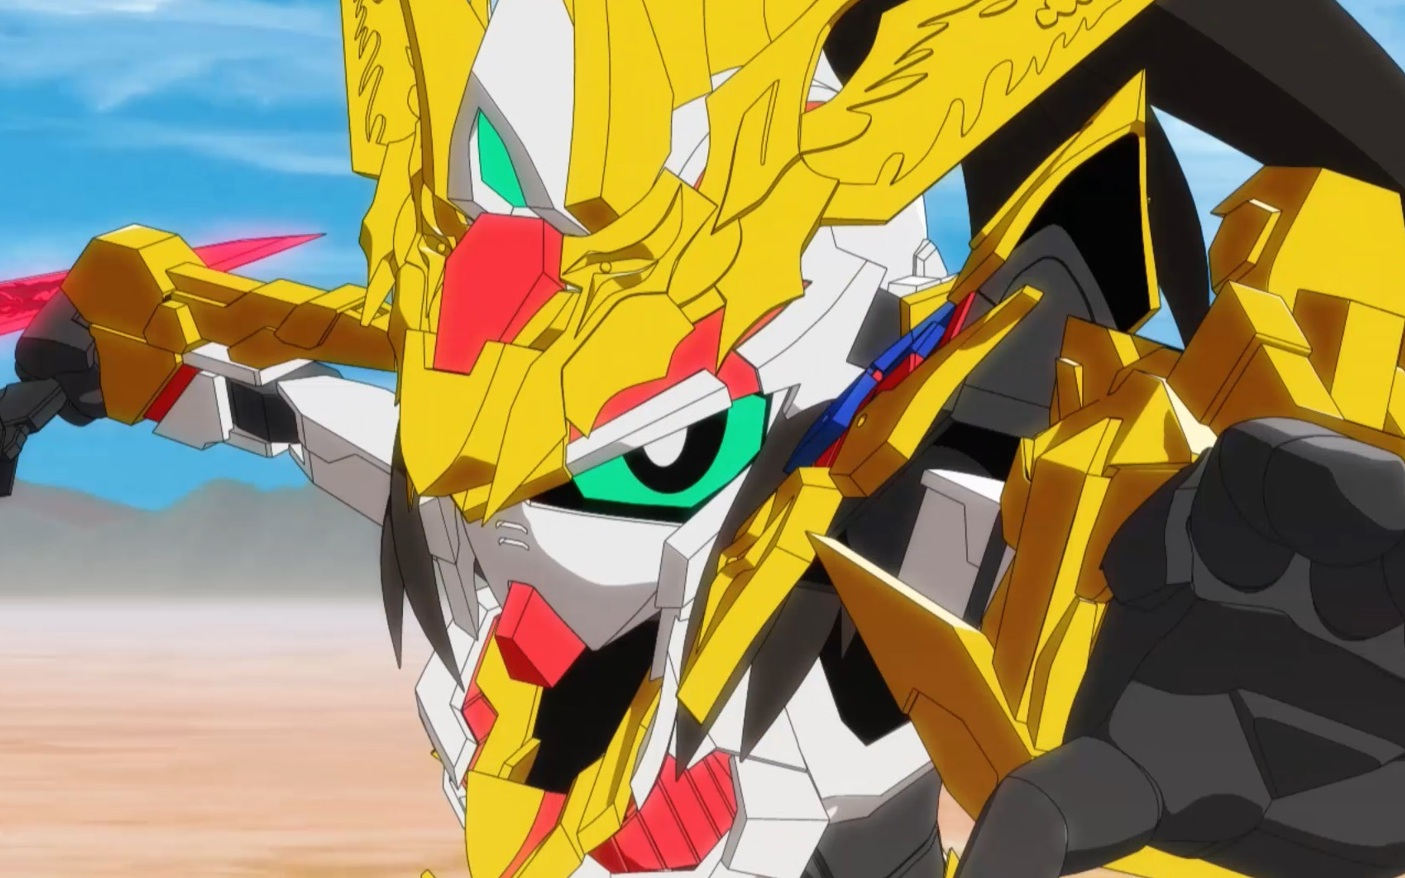 SD GUNDAM SPECIAL COURSE - Think smaller and cuter? This year we are introducing a special prize for any entry which uses the SD lineup of Gunpla Model Kits.